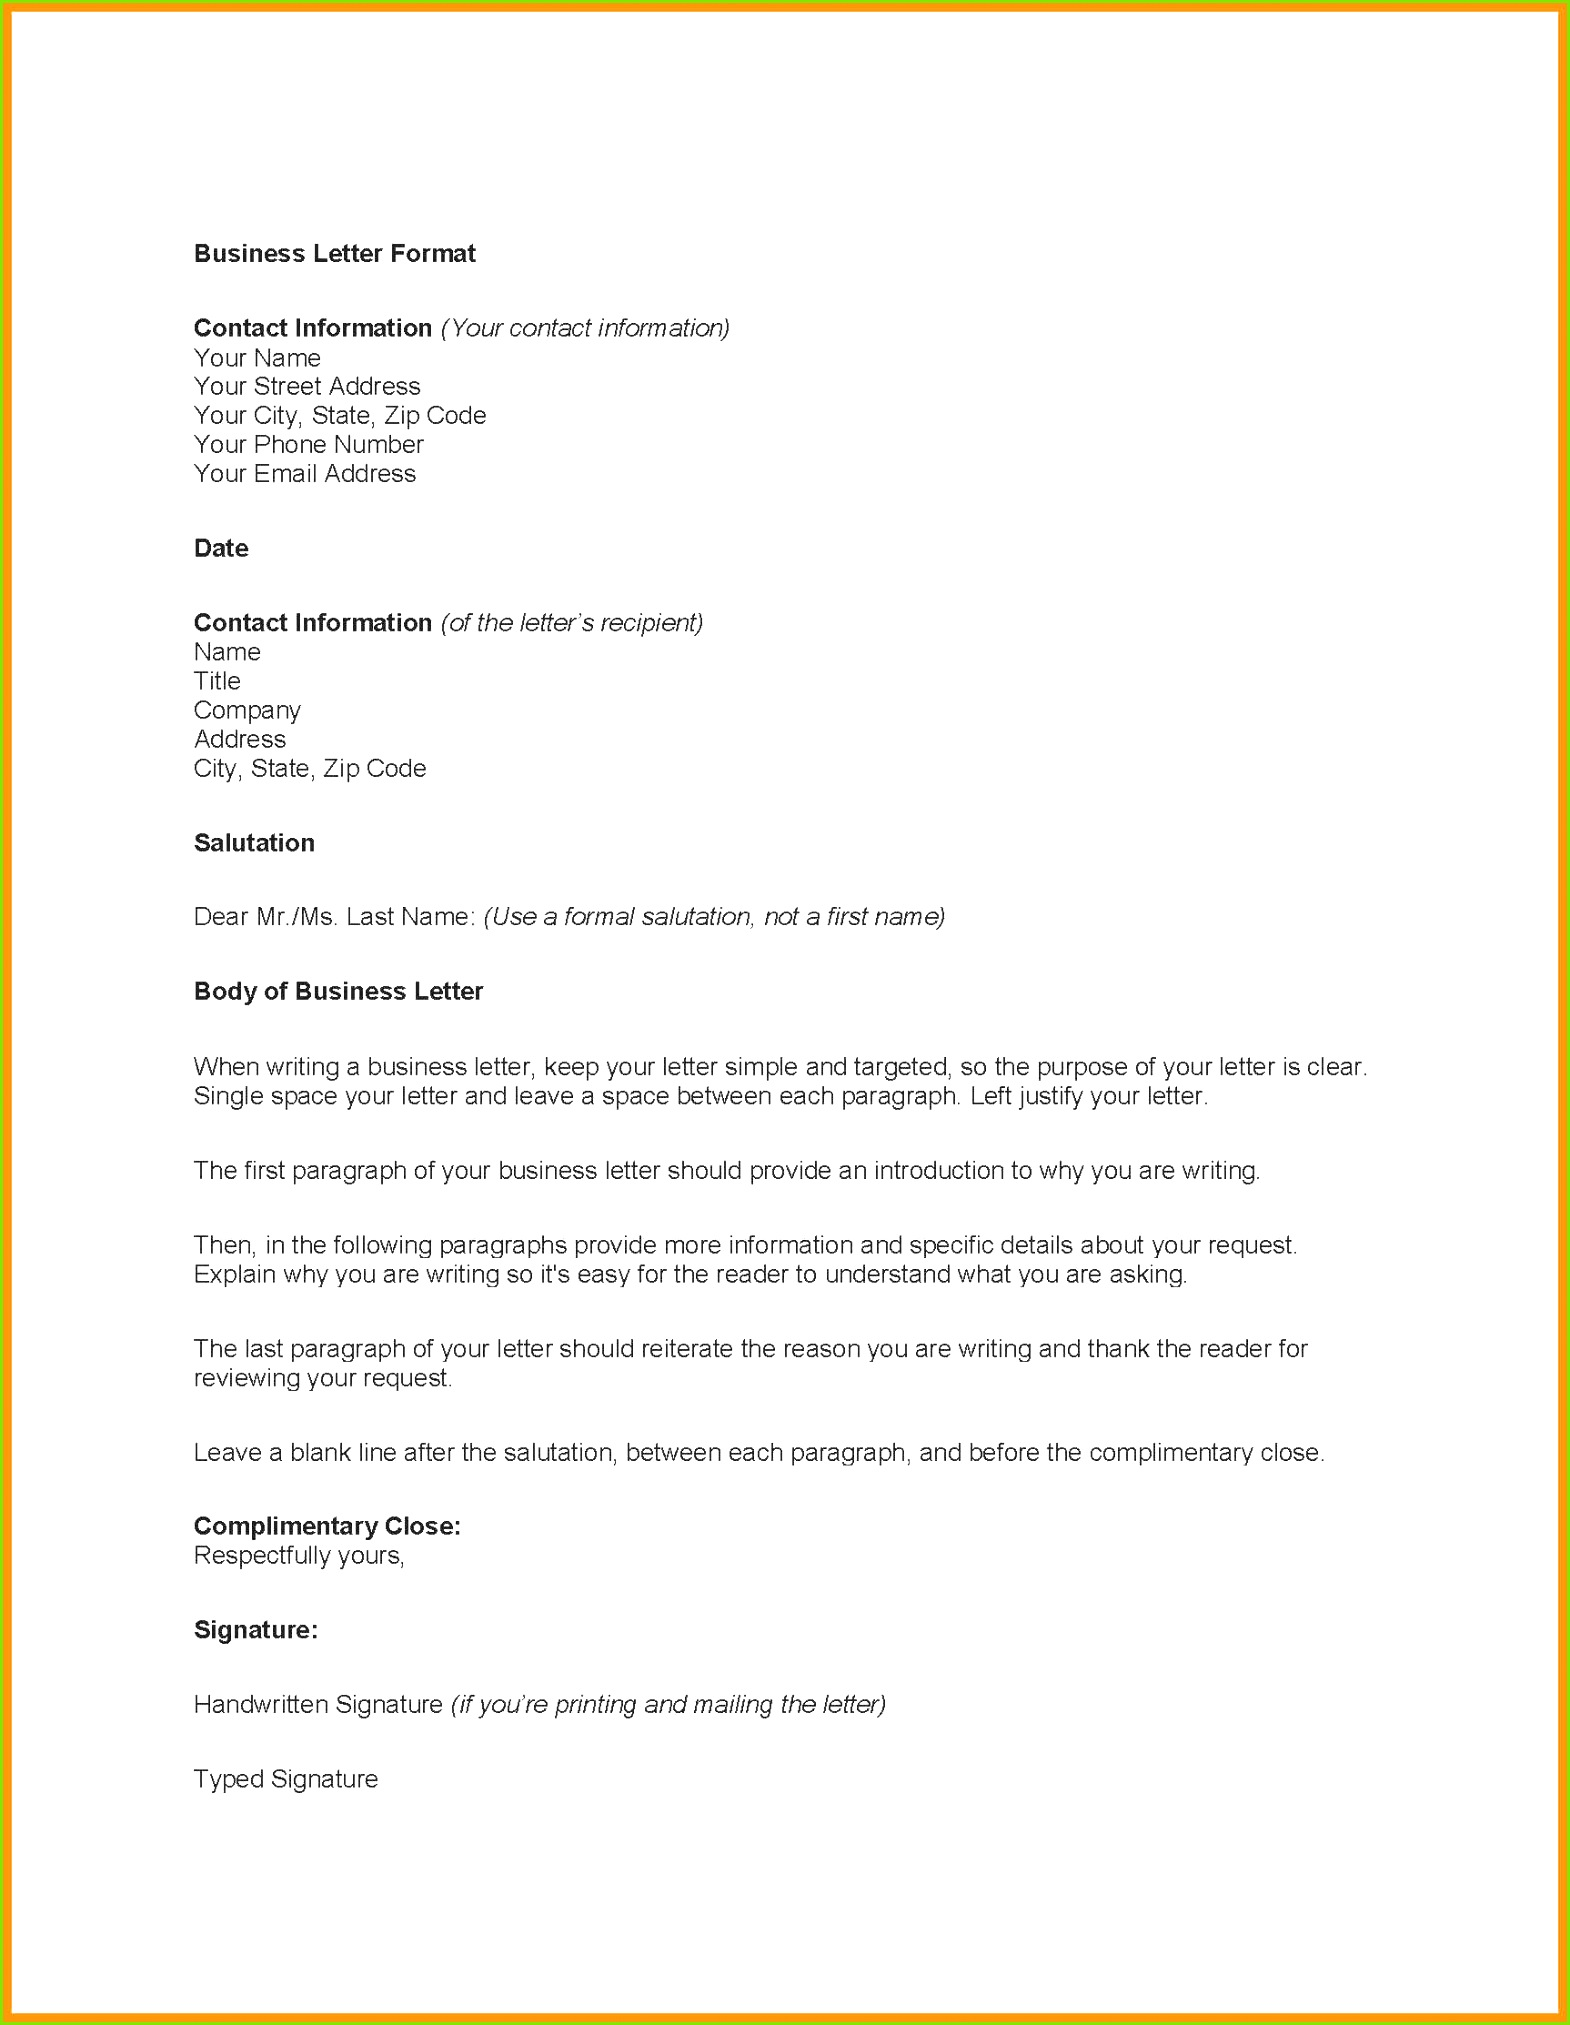 business brief schablone wort business letter format template